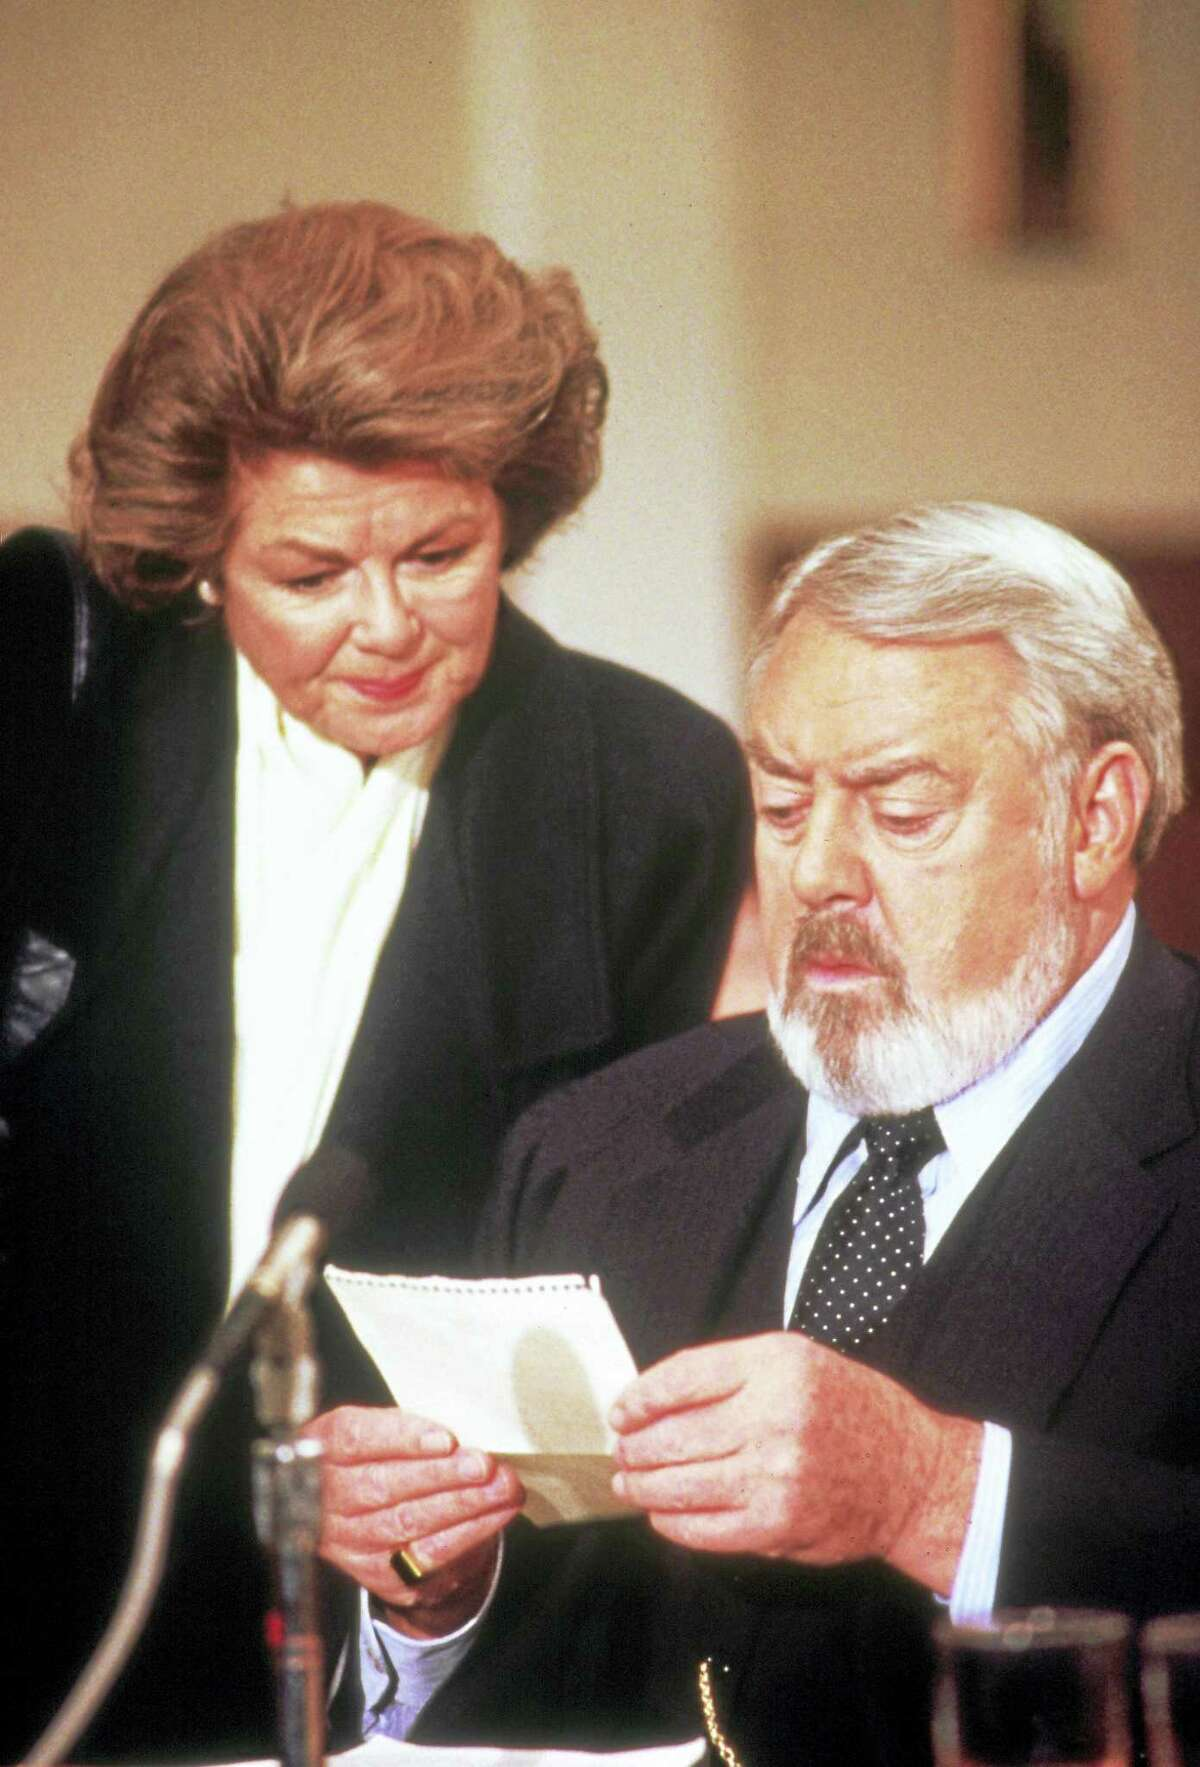 """No Merchandising. Editorial Use Only. Film still from """"Perry Mason: The Case of the Musical Murder"""" from 1992, with Barbara Hale as secretary Della Street and Raymond Burr as Perry Mason."""